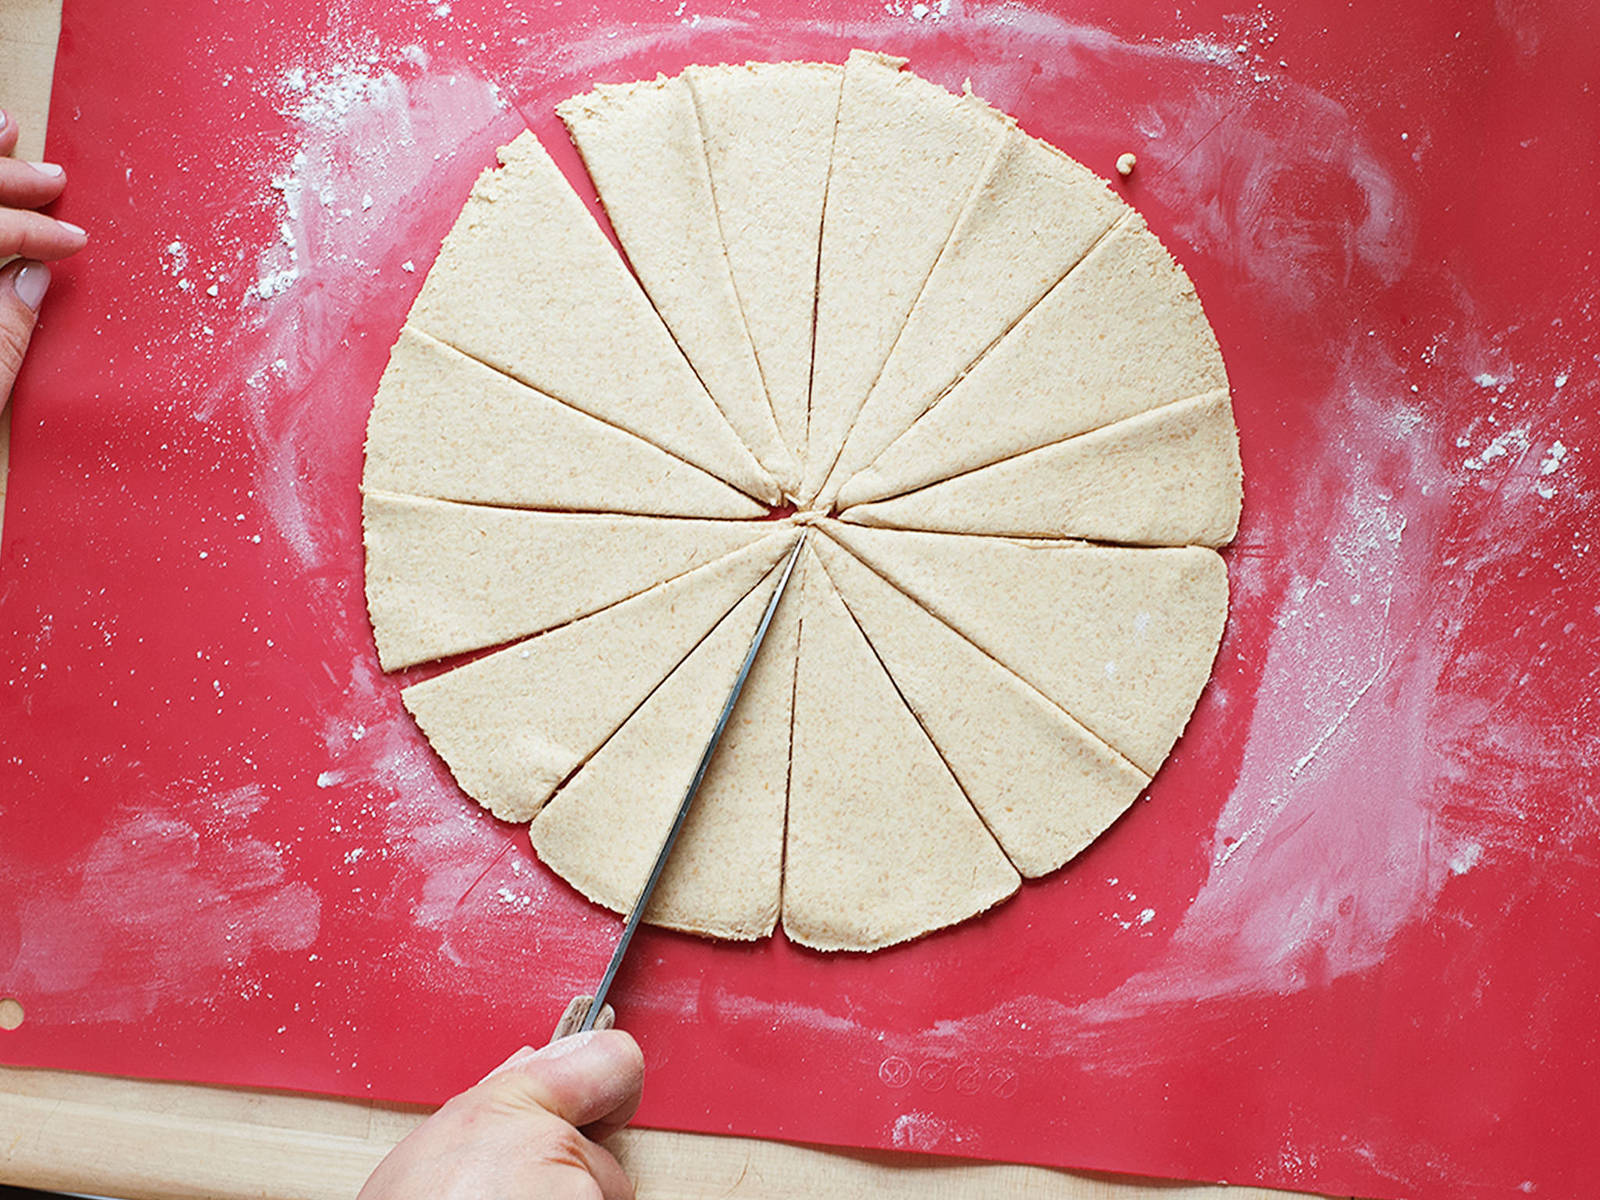 On a floured surface, roll out dough into a round (approx. 26 cm/10 in.). If necessary, use a plate as a guide and add flour for dusting. Cut dough into 16 equal triangles.